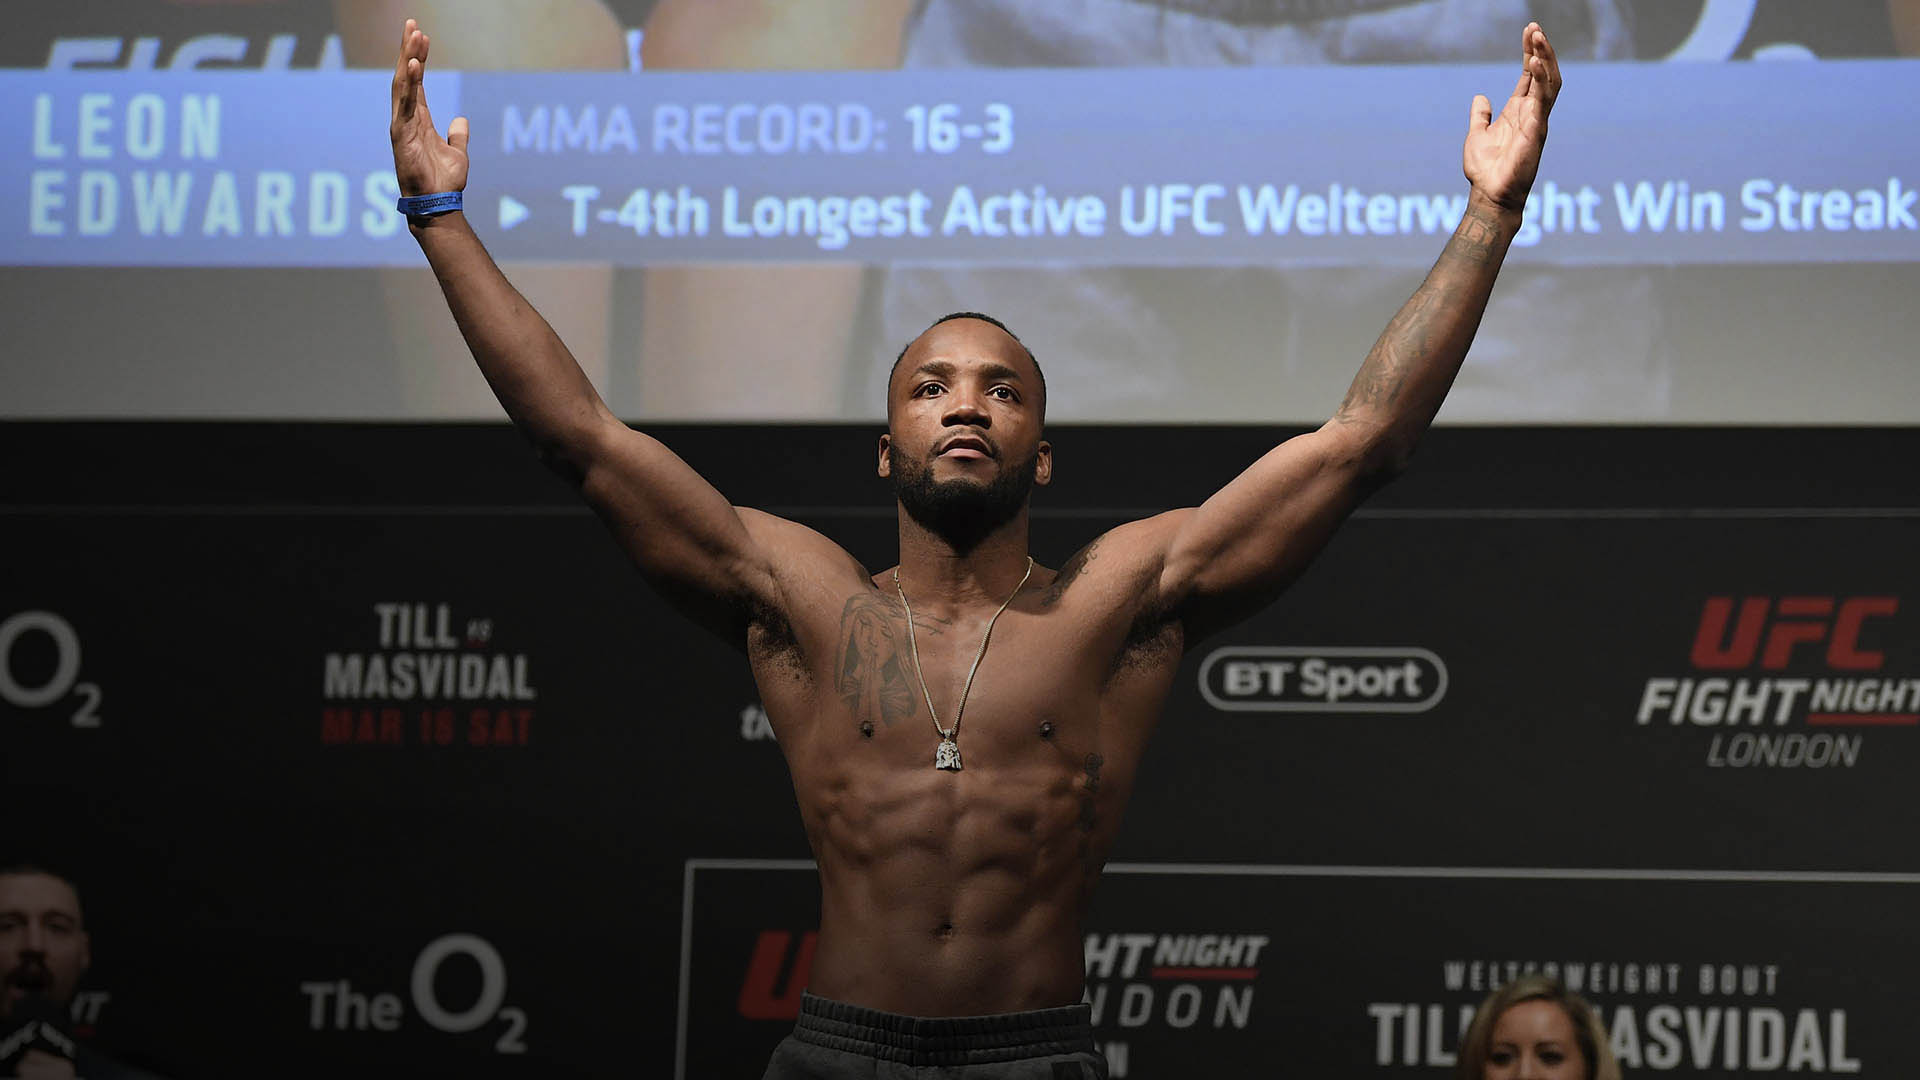 Leon Edwards of United Kingdom poses on the scale during the UFC Fight Night weigh-in at The O2 on March 15, 2019 in London, England. (Photo by Jeff Bottari/Zuffa LLC)